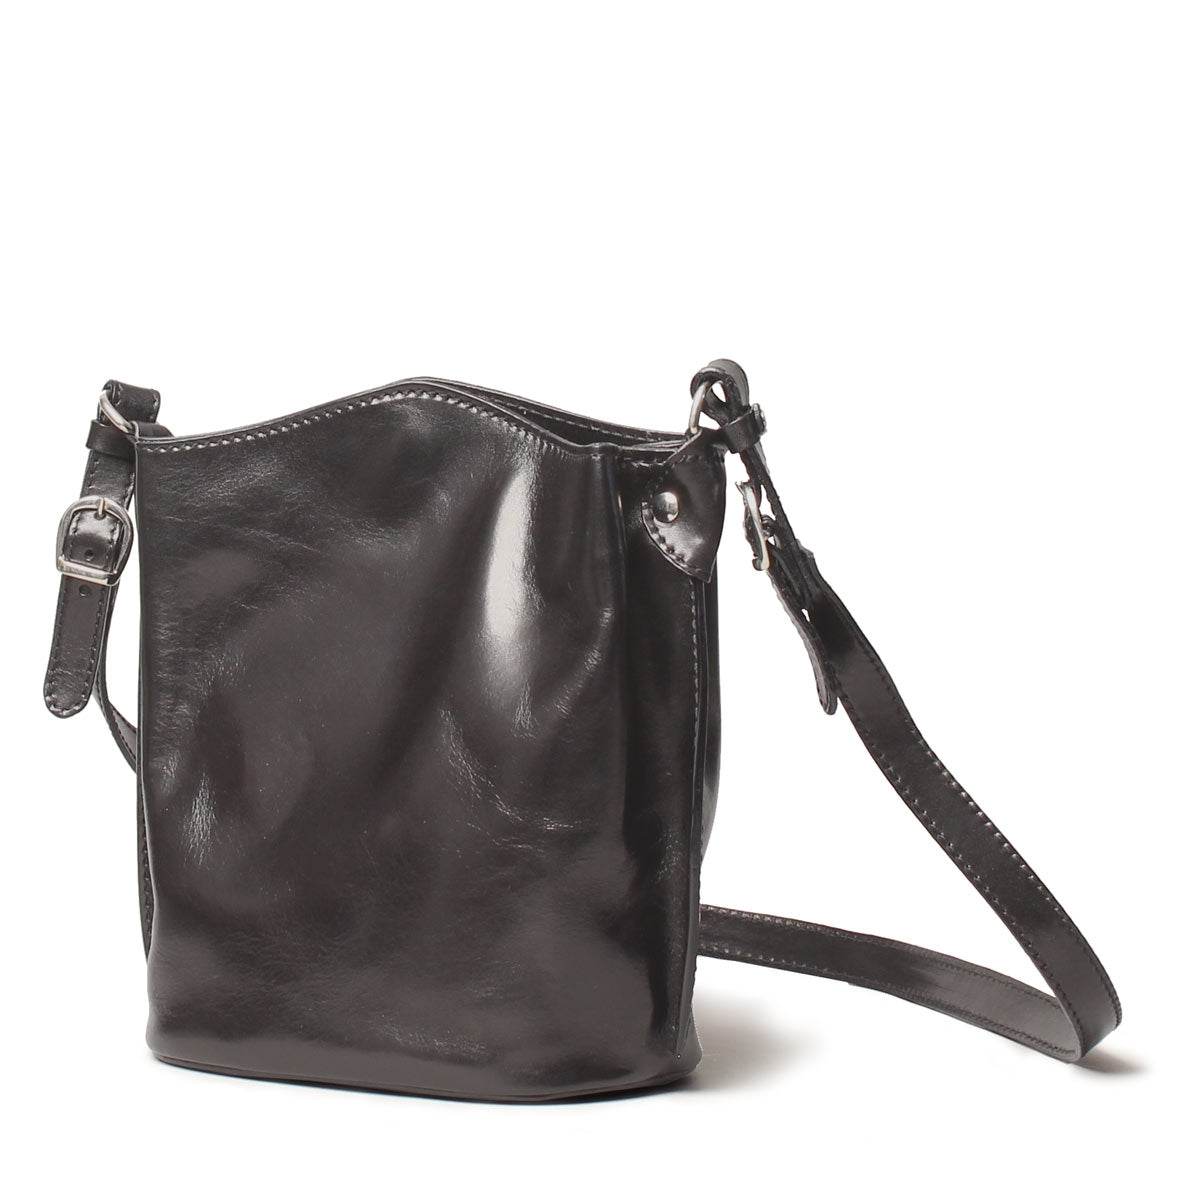 Image 3 of the 'Palermo' Women's Black Leather Bucket Bag